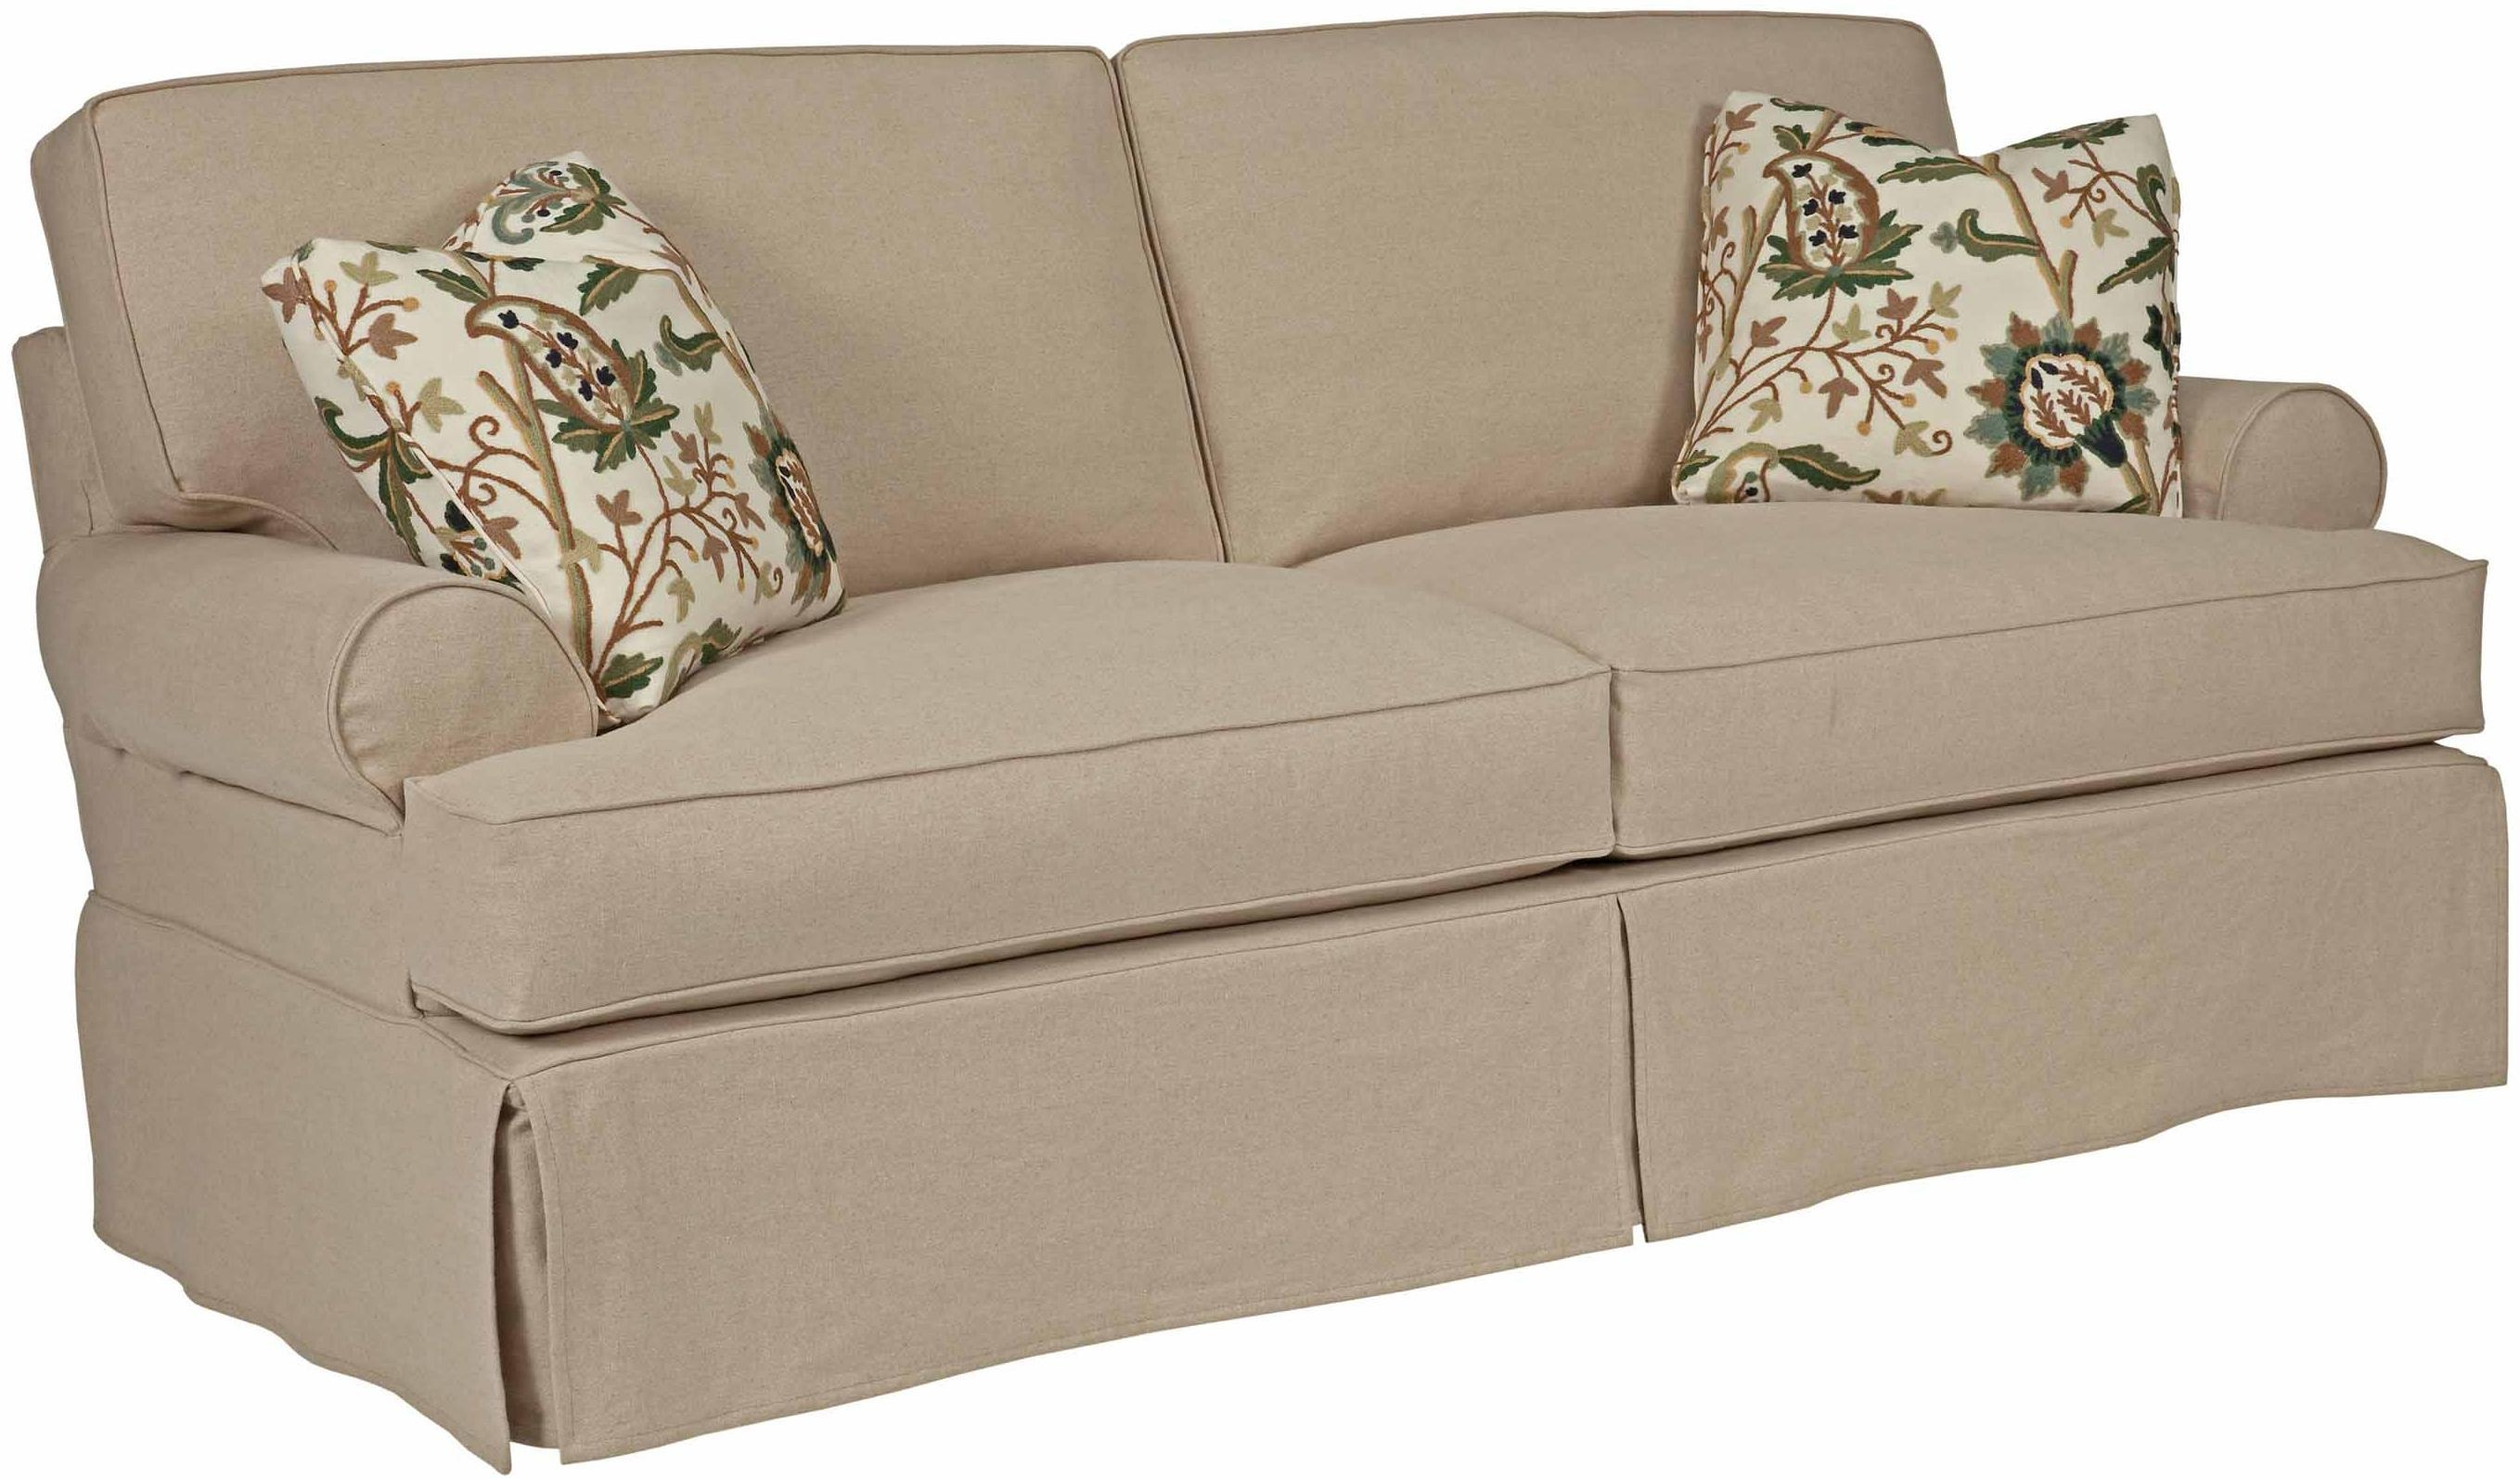 2 Piece T Cushion Sofa Slipcover – Sofas With Regard To 2 Piece Sofa Covers (View 21 of 27)